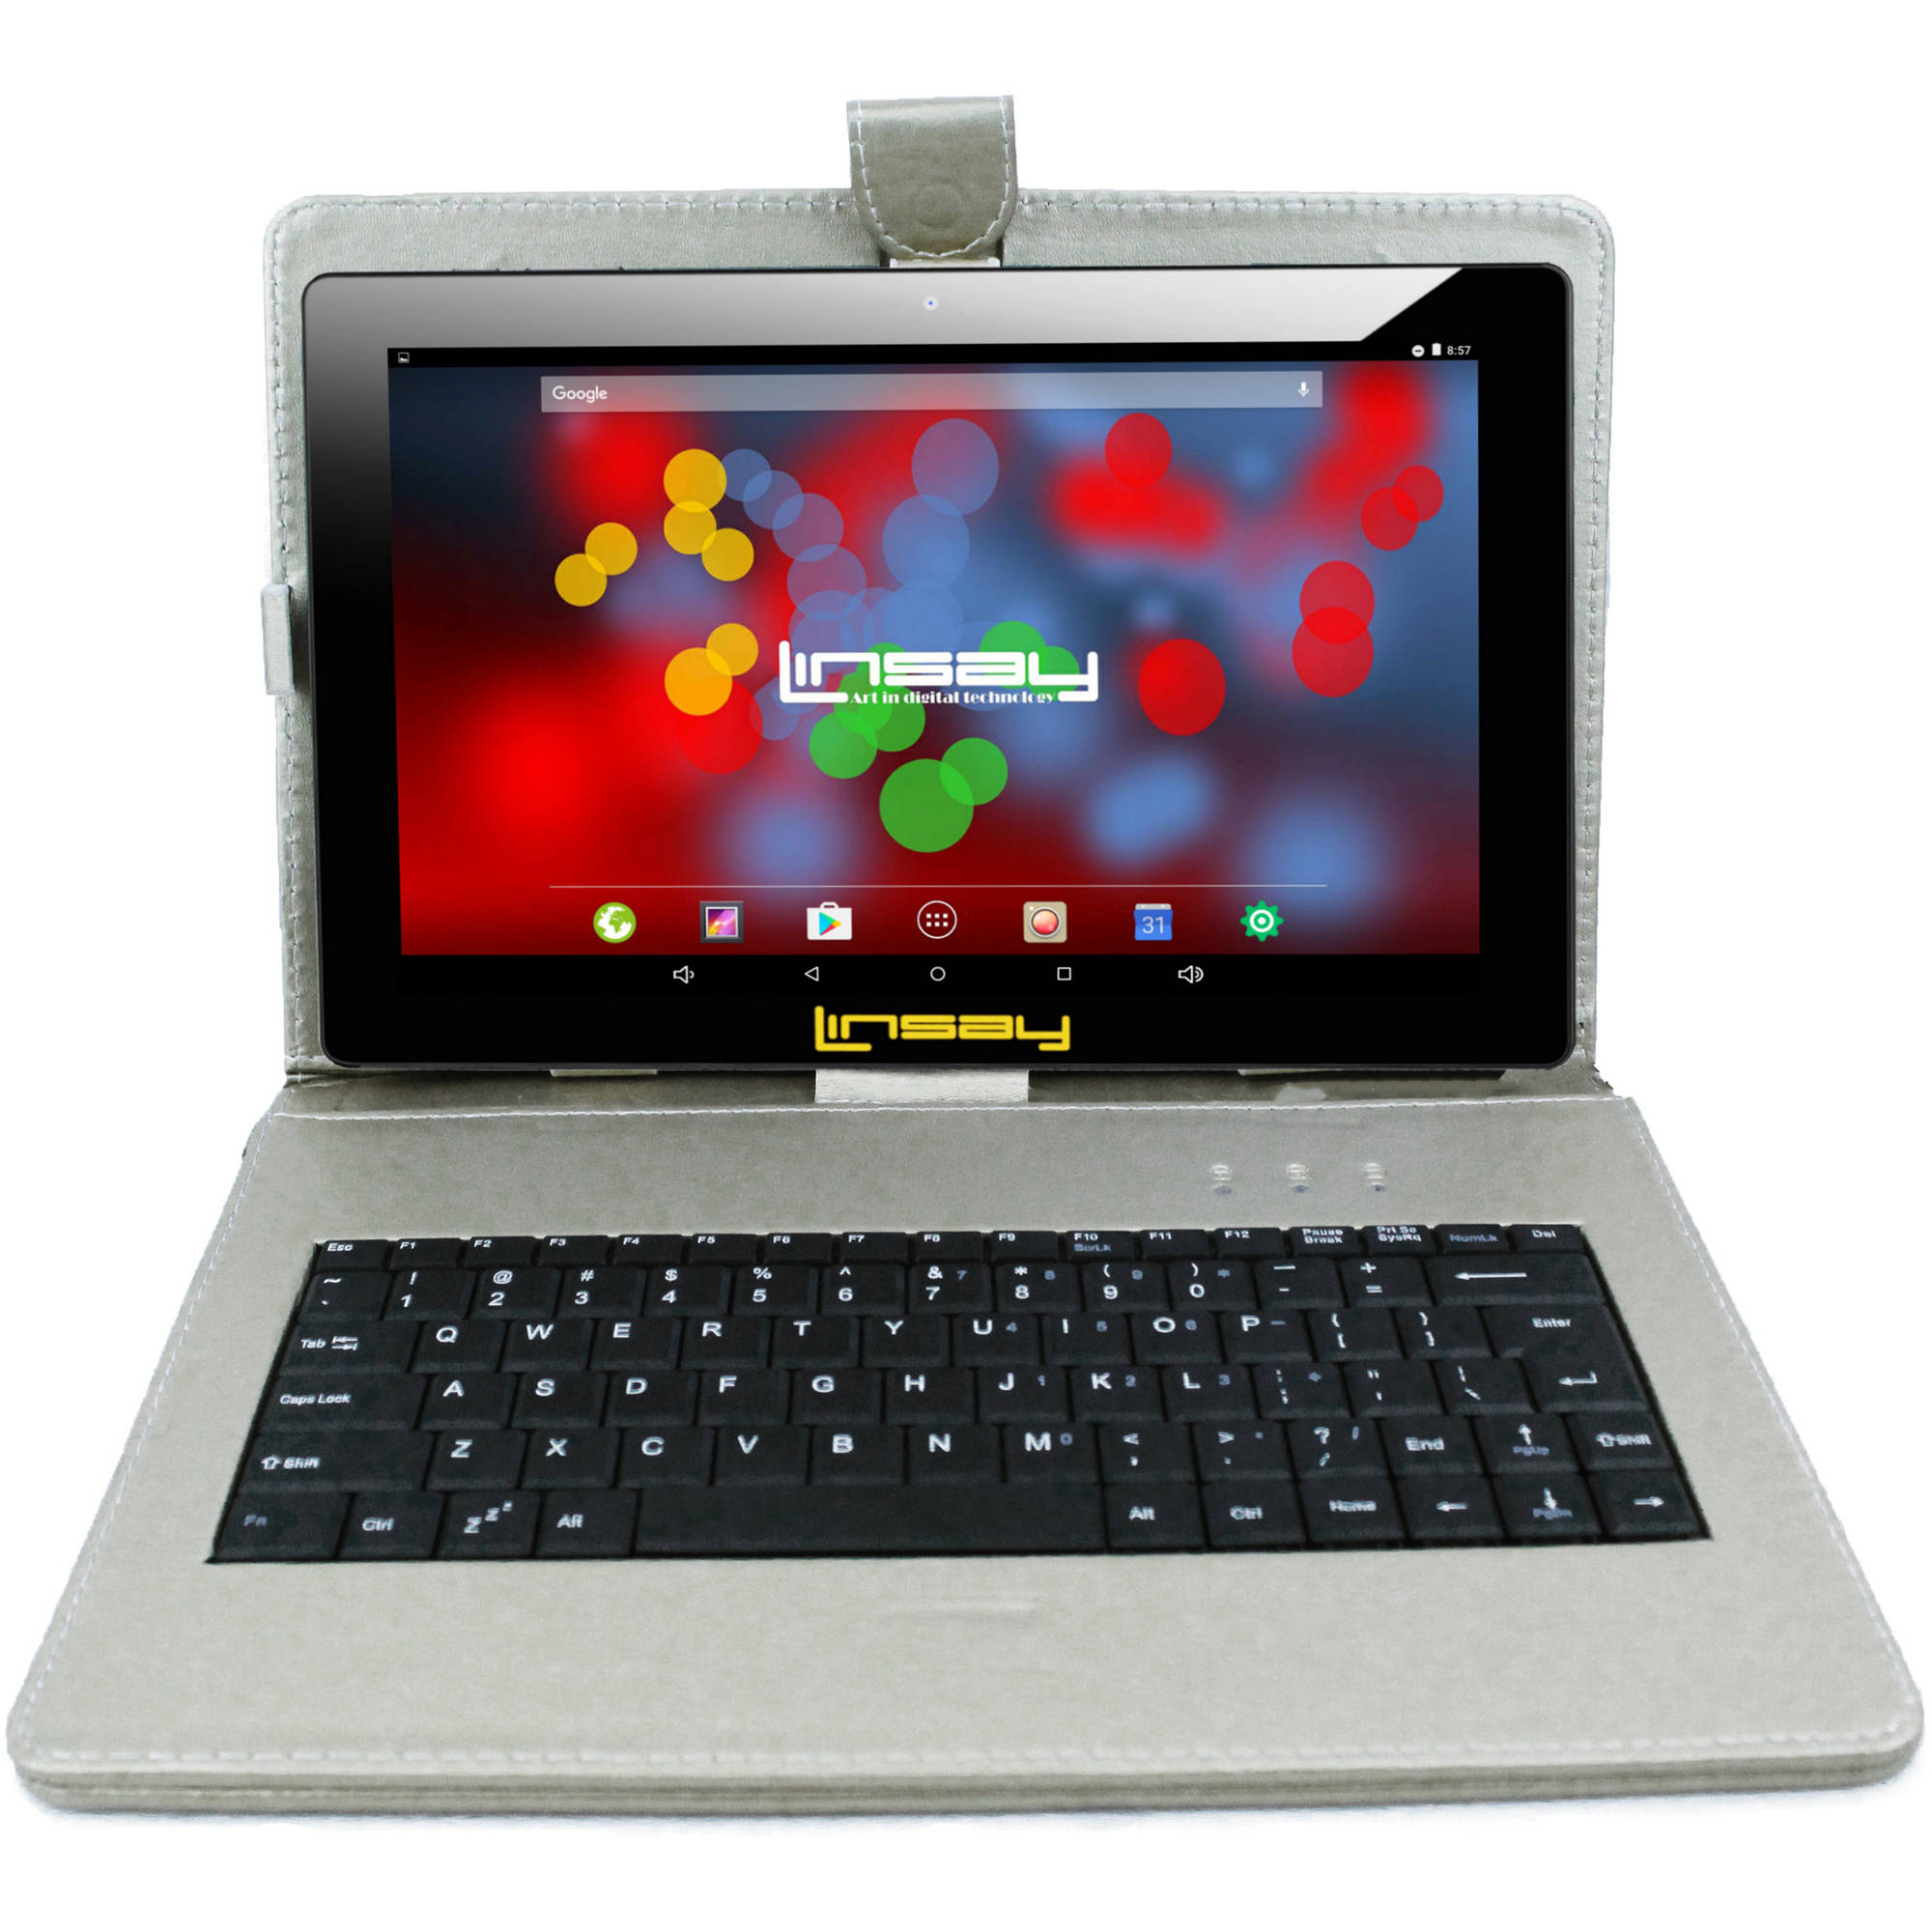 "LINSAY 10.1"" 1280x800 IPS Touchscreen 16GB Tablet PC Featuring Android 6.1 (Marshmallow) Operating System Bundle with Silver Keyboard"